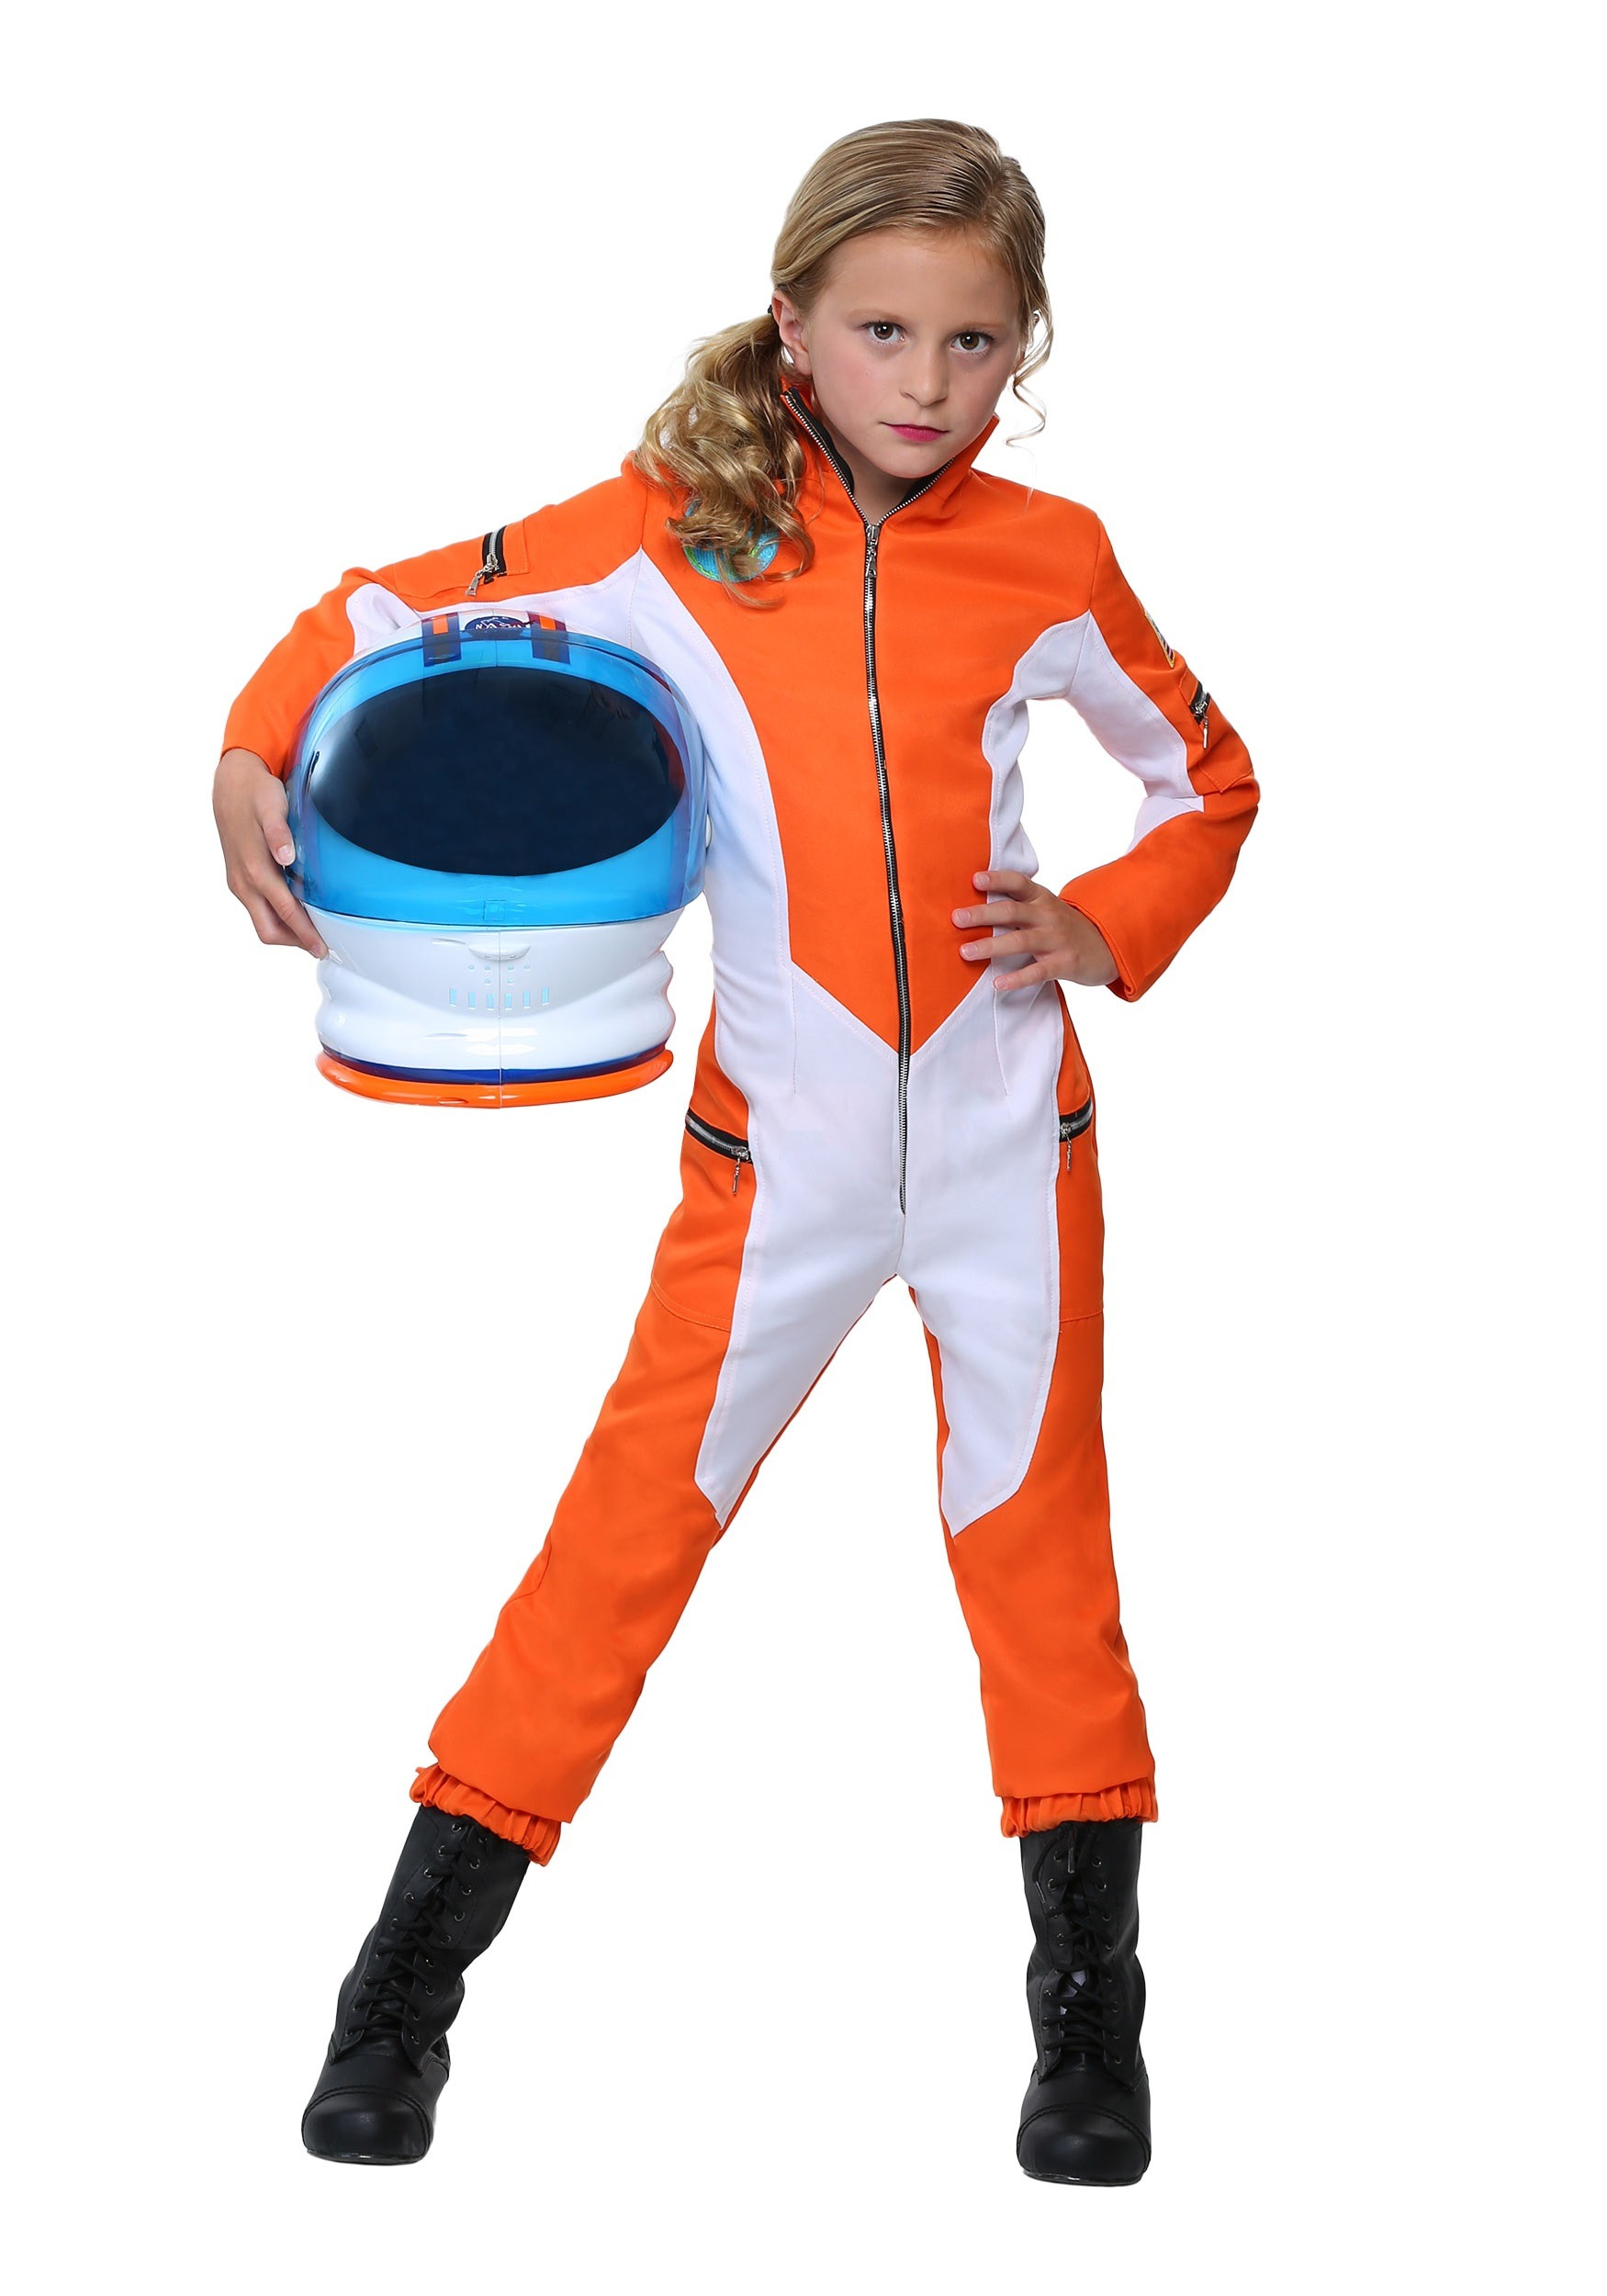 astronaut kid space - photo #45